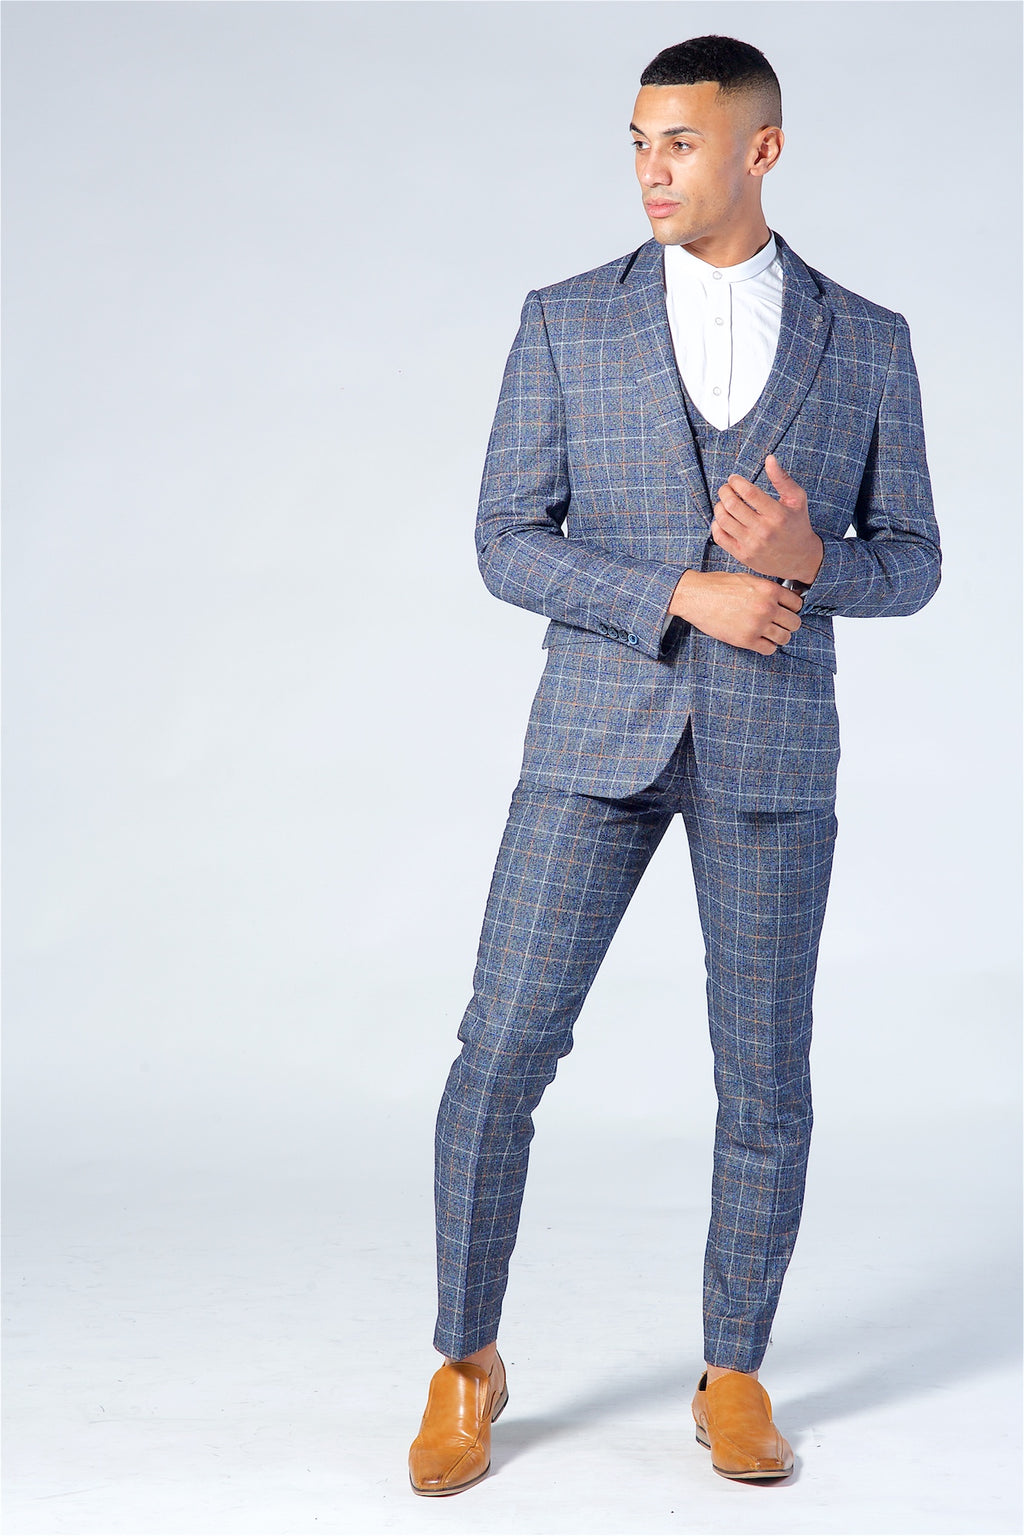 Cavani Bonita Blue Grey Three Piece Suit